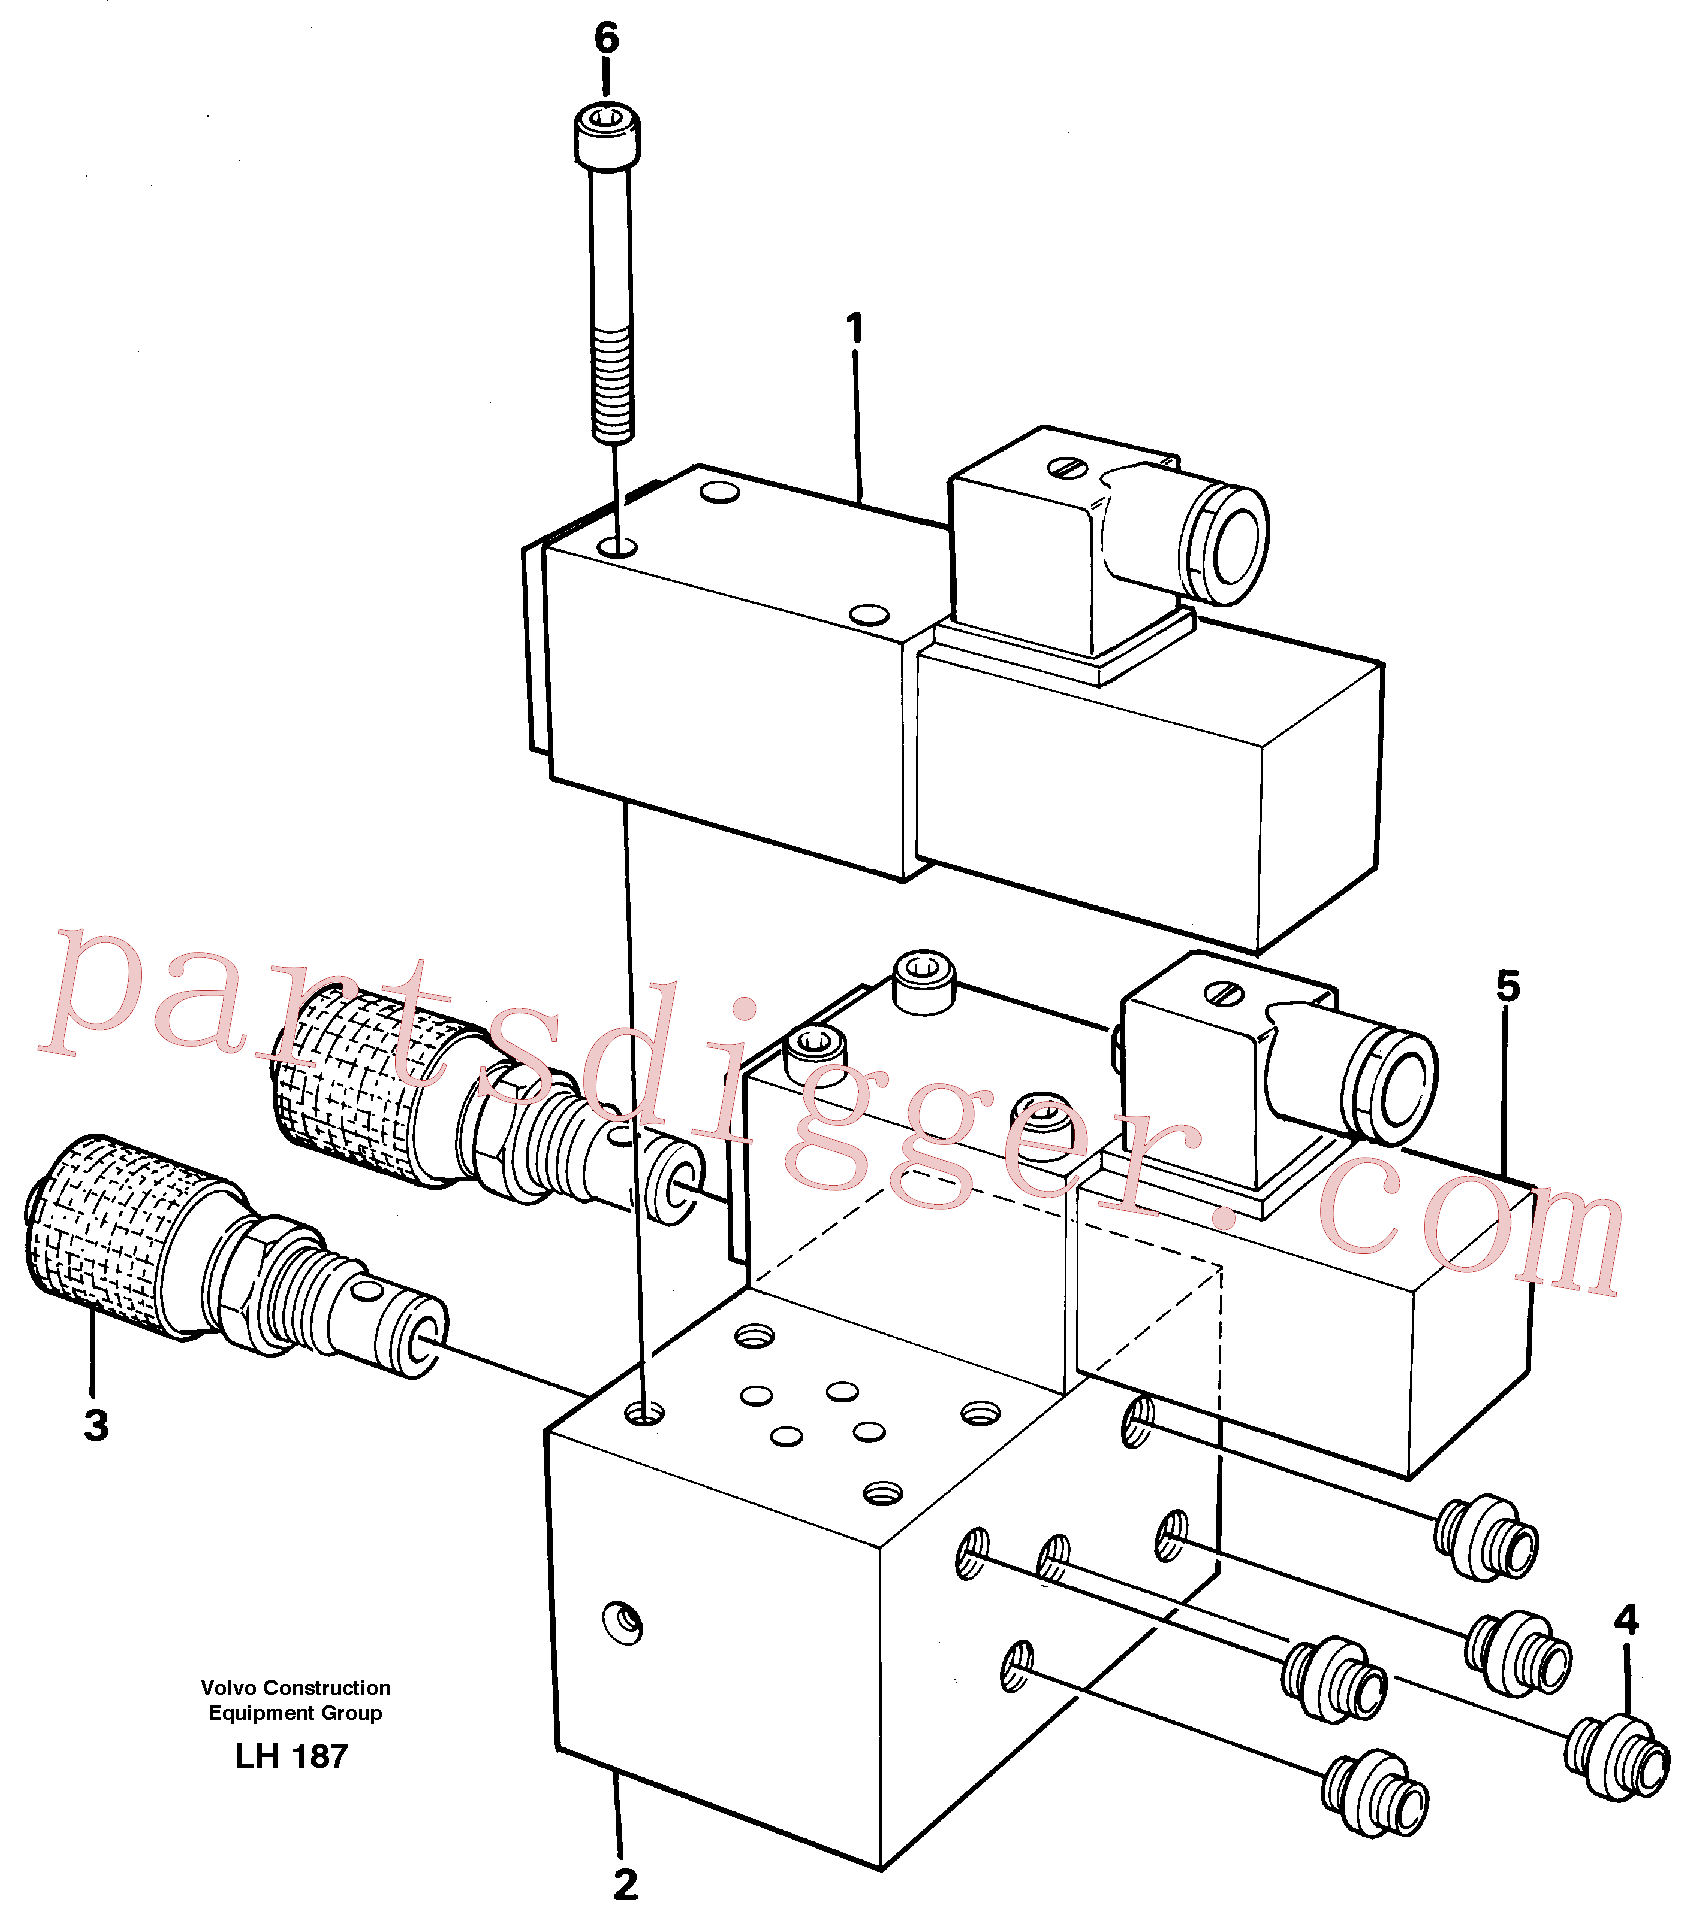 VOE14243114 for Volvo Control block, end pos. dampening(LH187 assembly)